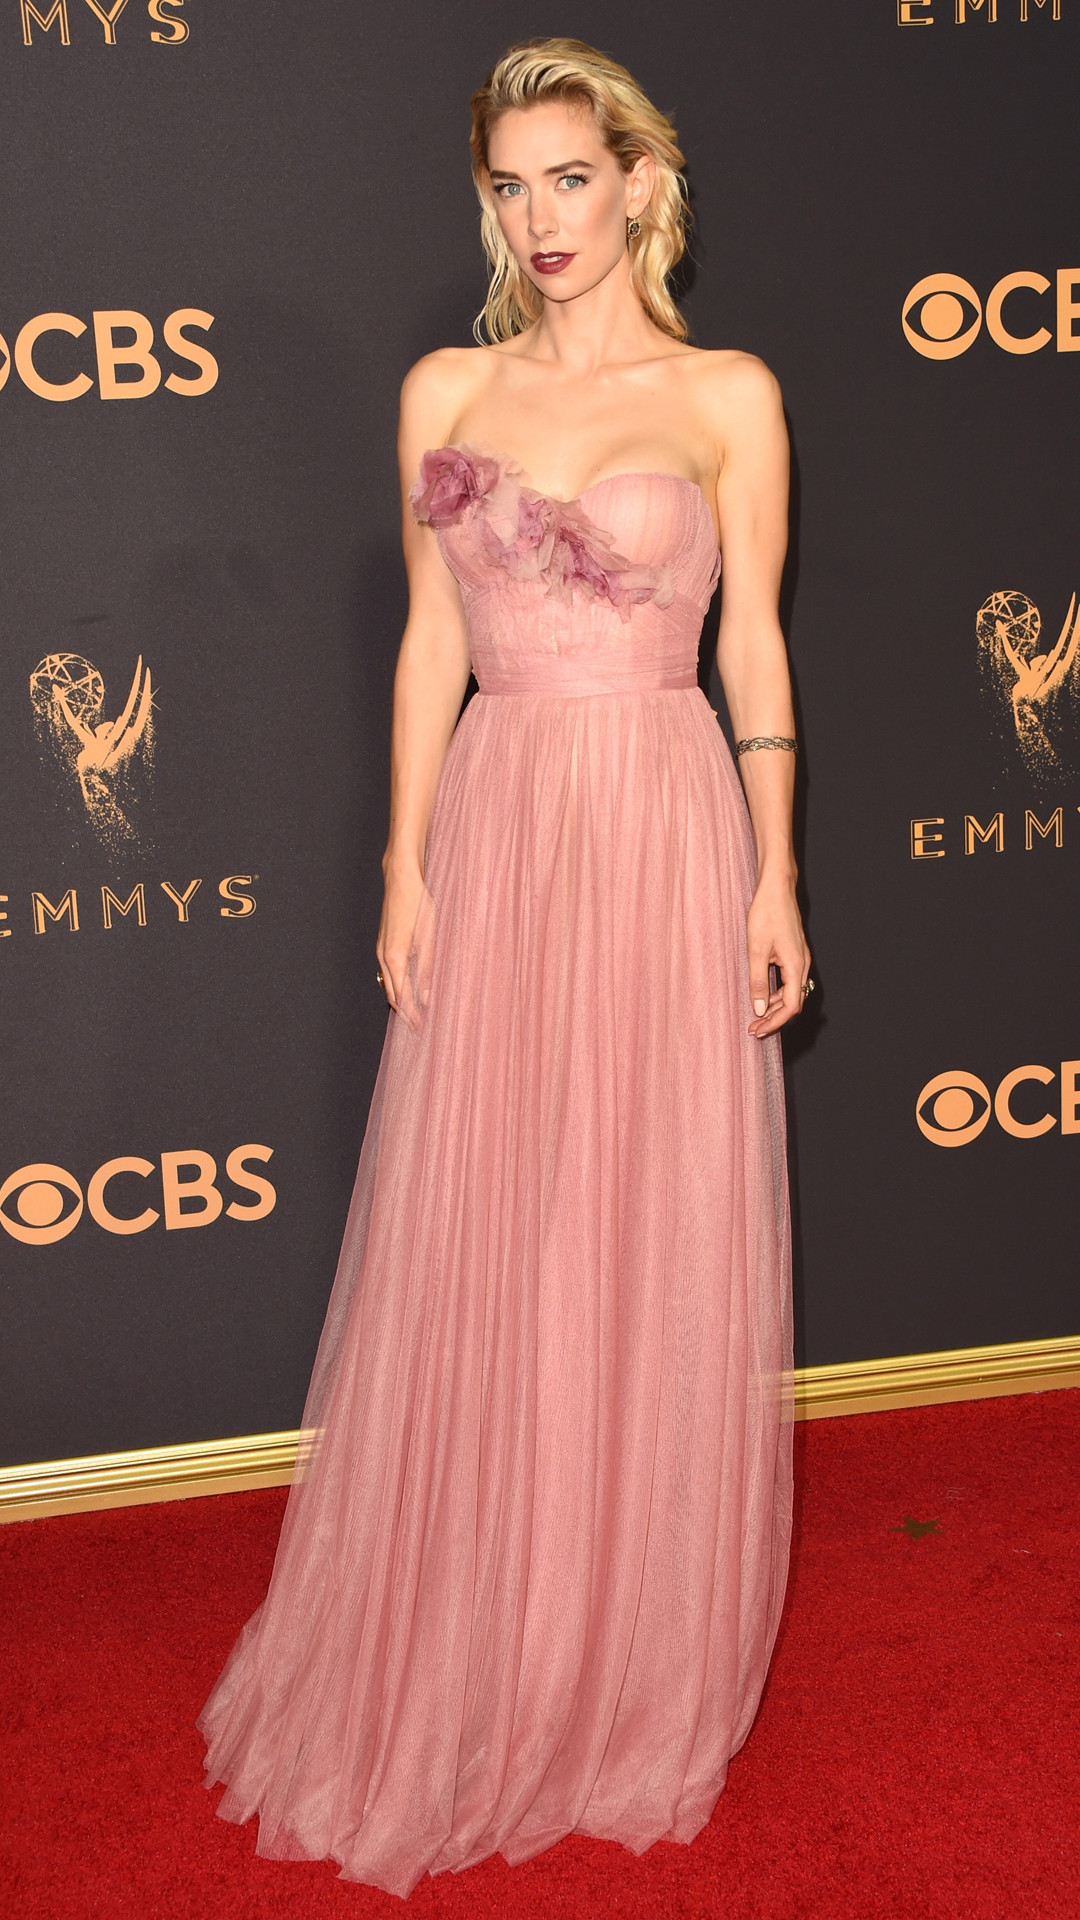 rs_1080x1920-170917164500-1080x1920Vanessa-Kirby-Emmy-Awards-Arrivals-2017